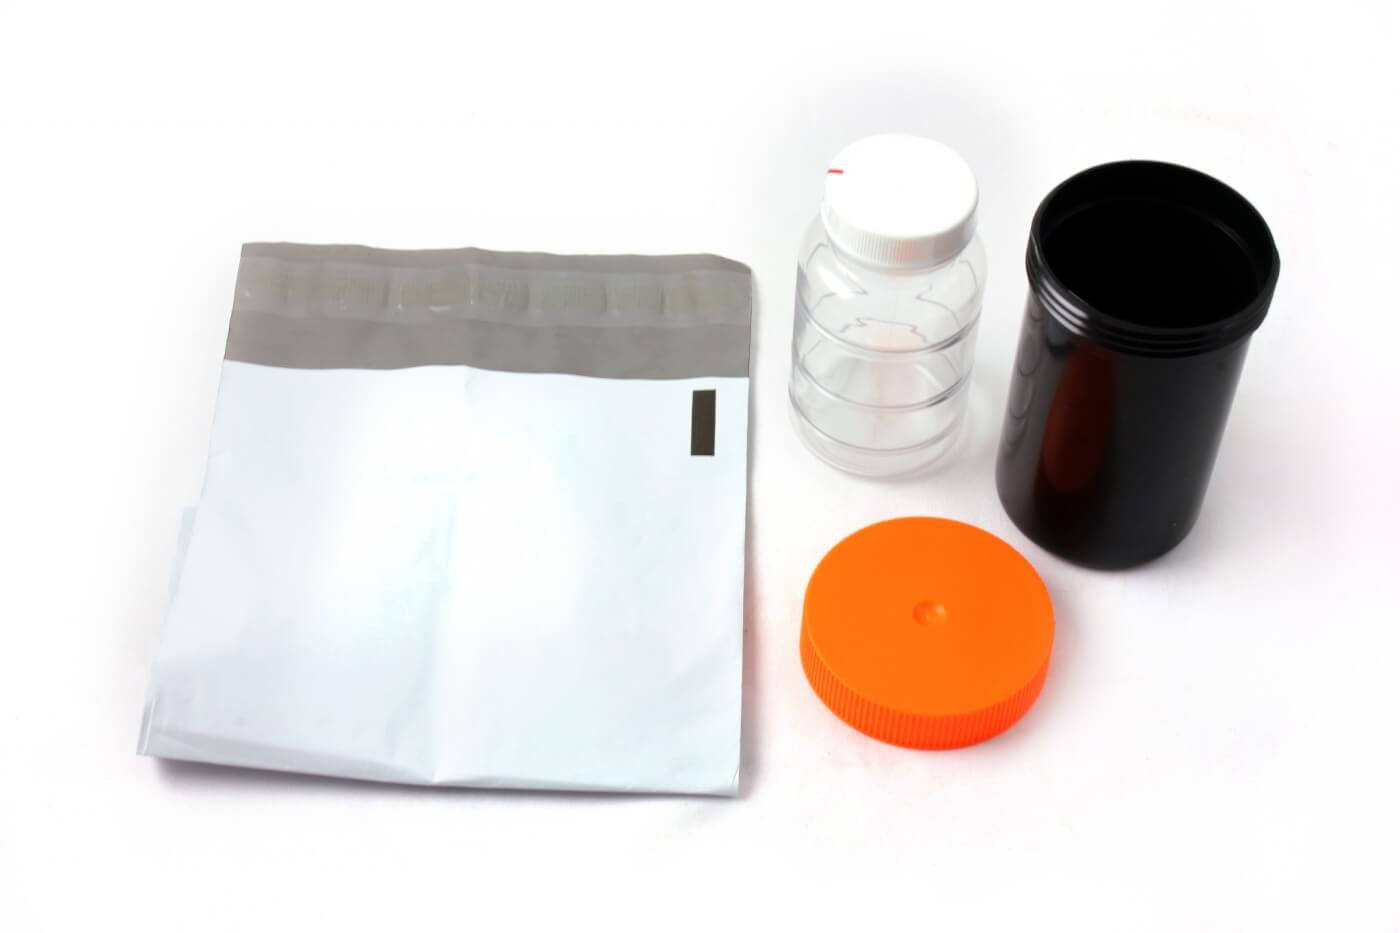 1. The oil analysis kit from Merchant Automotive includes the sample bottle, shipping container and a postage-paid shipping envelope to send the sample to Apex for analysis.